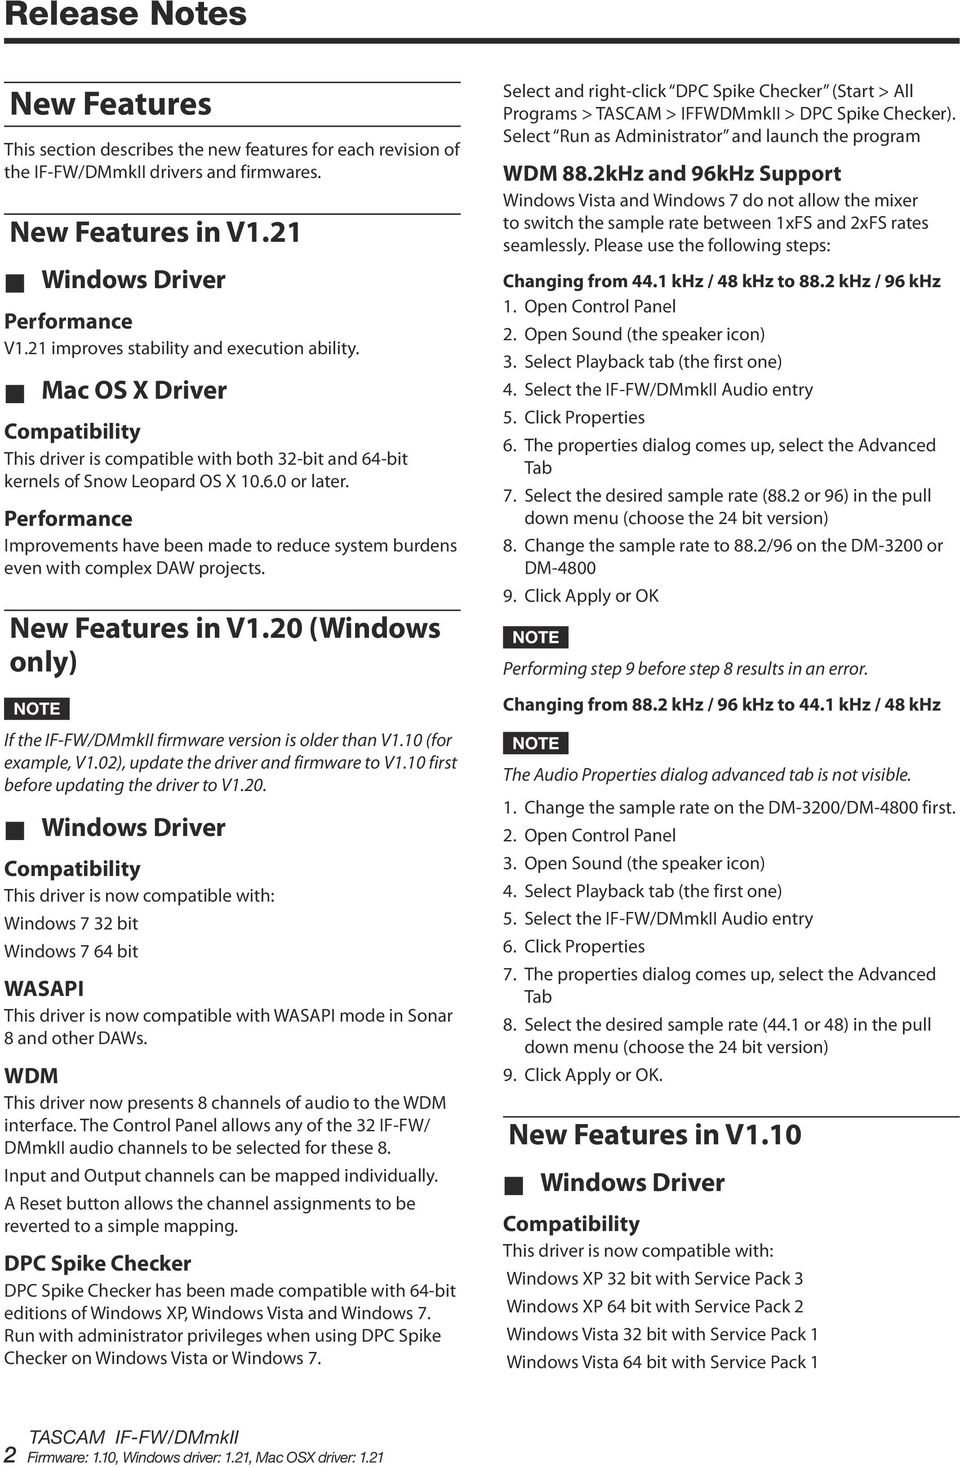 New Features in V1.20 (Windows only) If the IF-FW/DMmkII firmware version is older than V1.10 (for example, V1.02), update the driver and firmware to V1.10 first before updating the driver to V1.20. This driver is now compatible with: Windows 7 32 bit Windows 7 64 bit WASAPI This driver is now compatible with WASAPI mode in Sonar 8 and other DAWs.